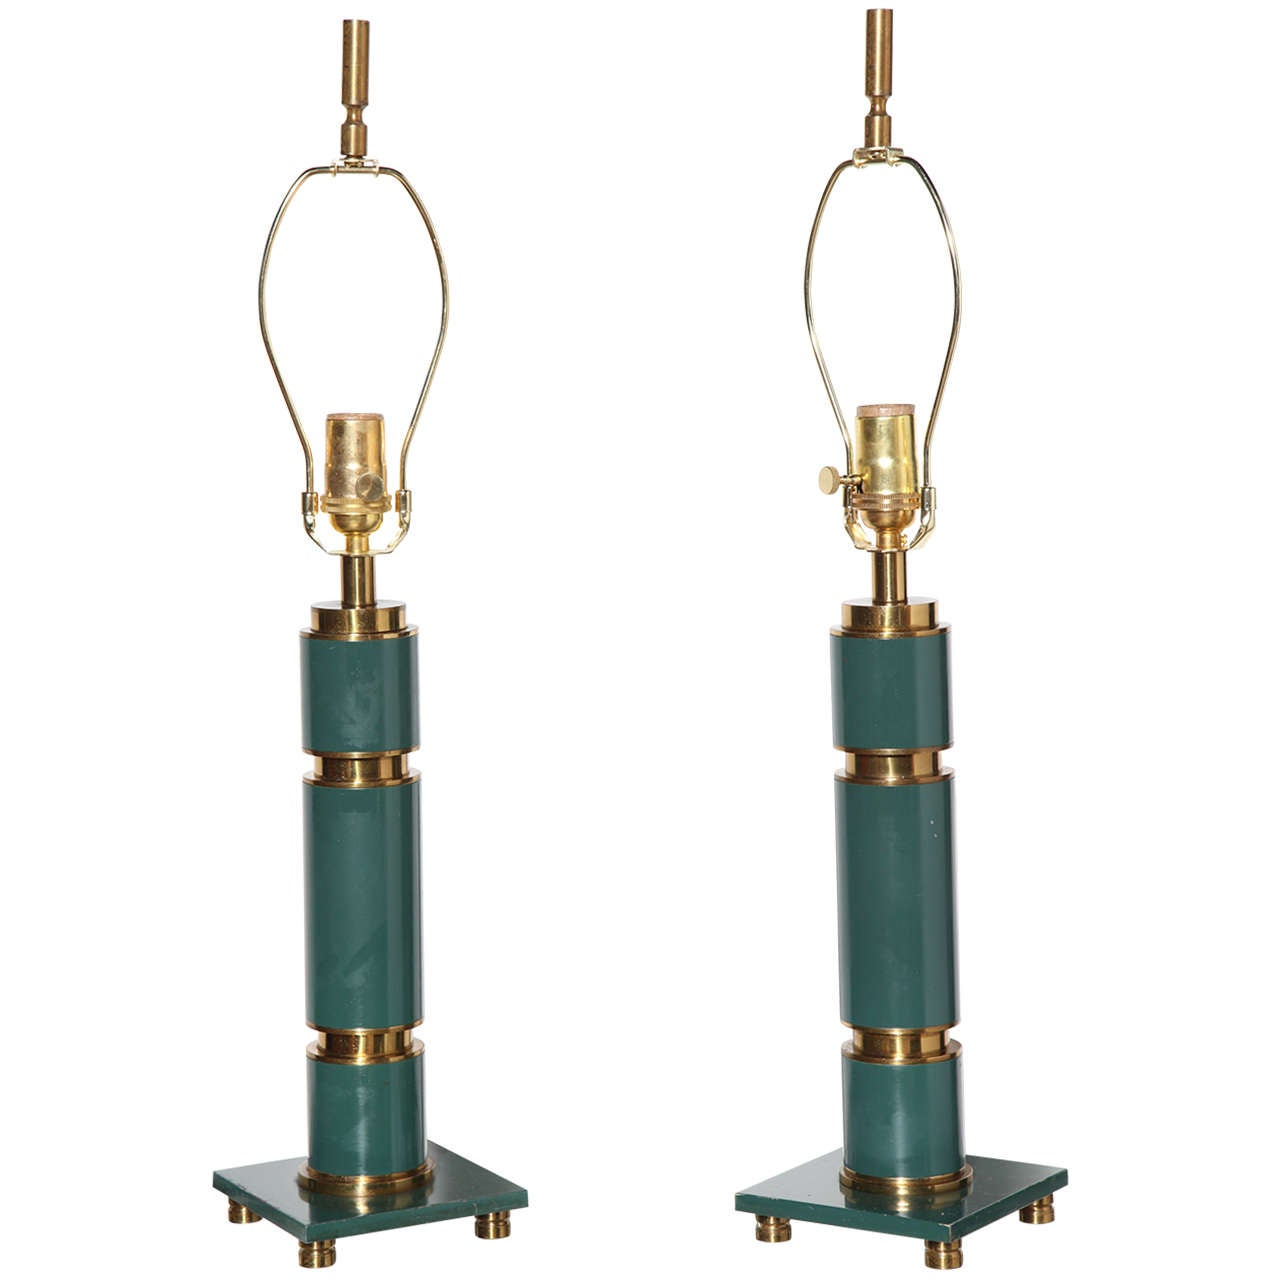 Pair of 1940s Walter Von Nessen Style Brass and Enameled Teal Lamps